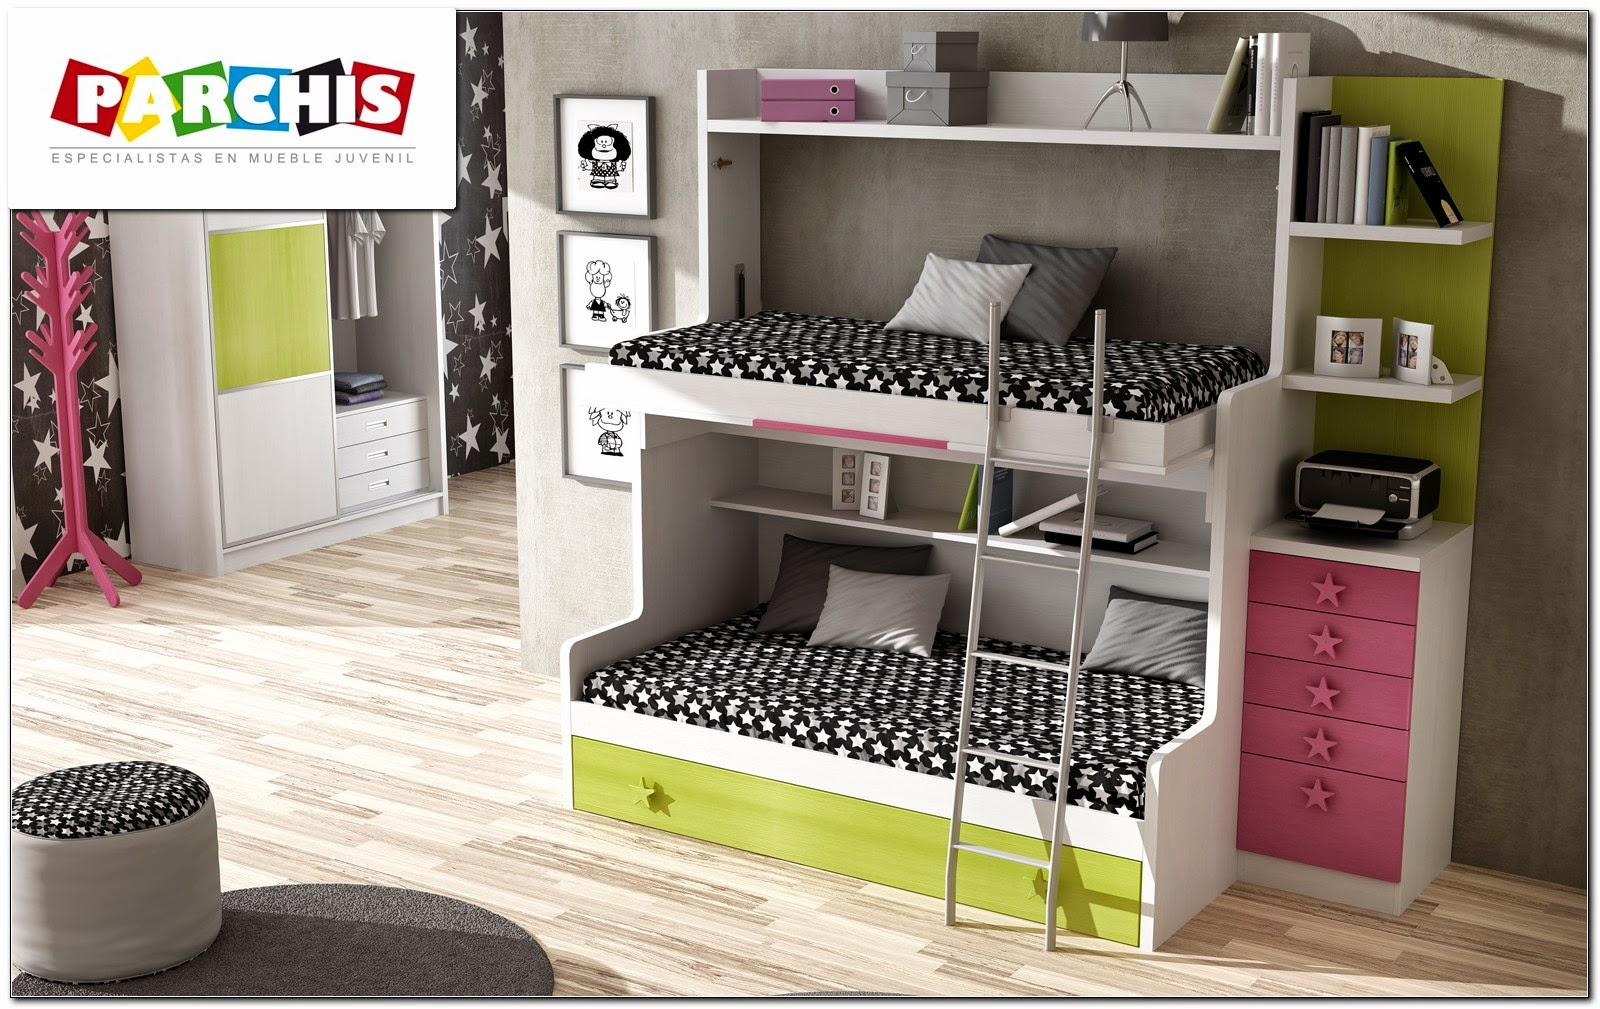 Camas abatibles madrid excellent cama abatible horizontal - Camas abatibles en madrid ...